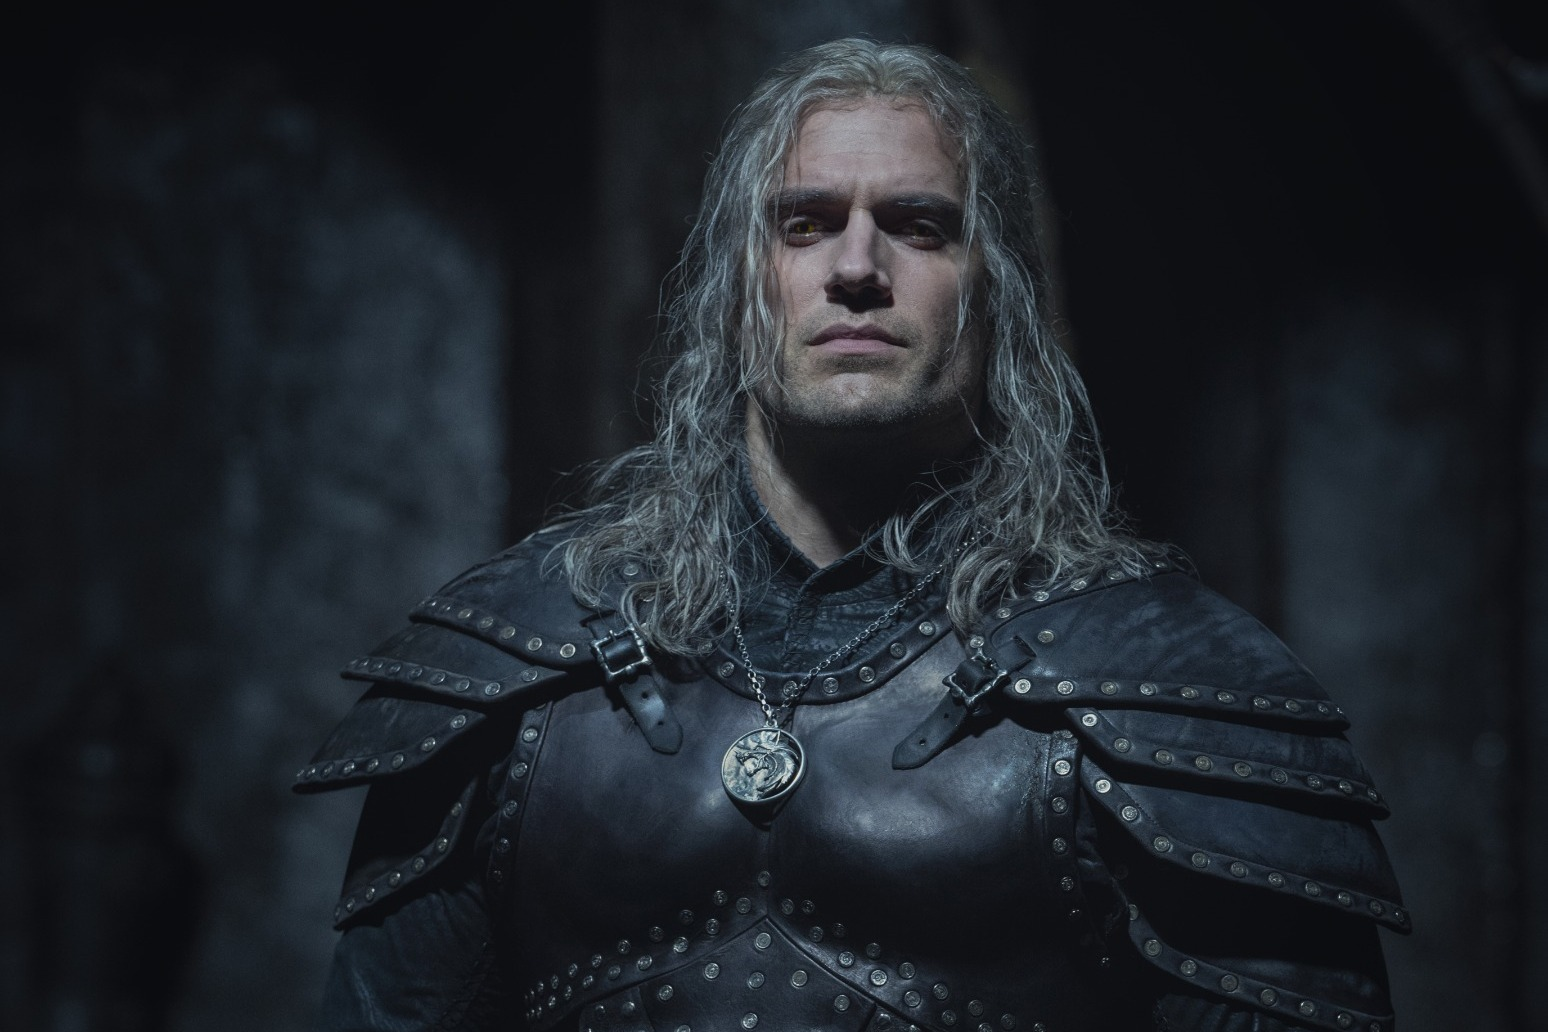 Netflix reveals premiere date for season two of The Witcher